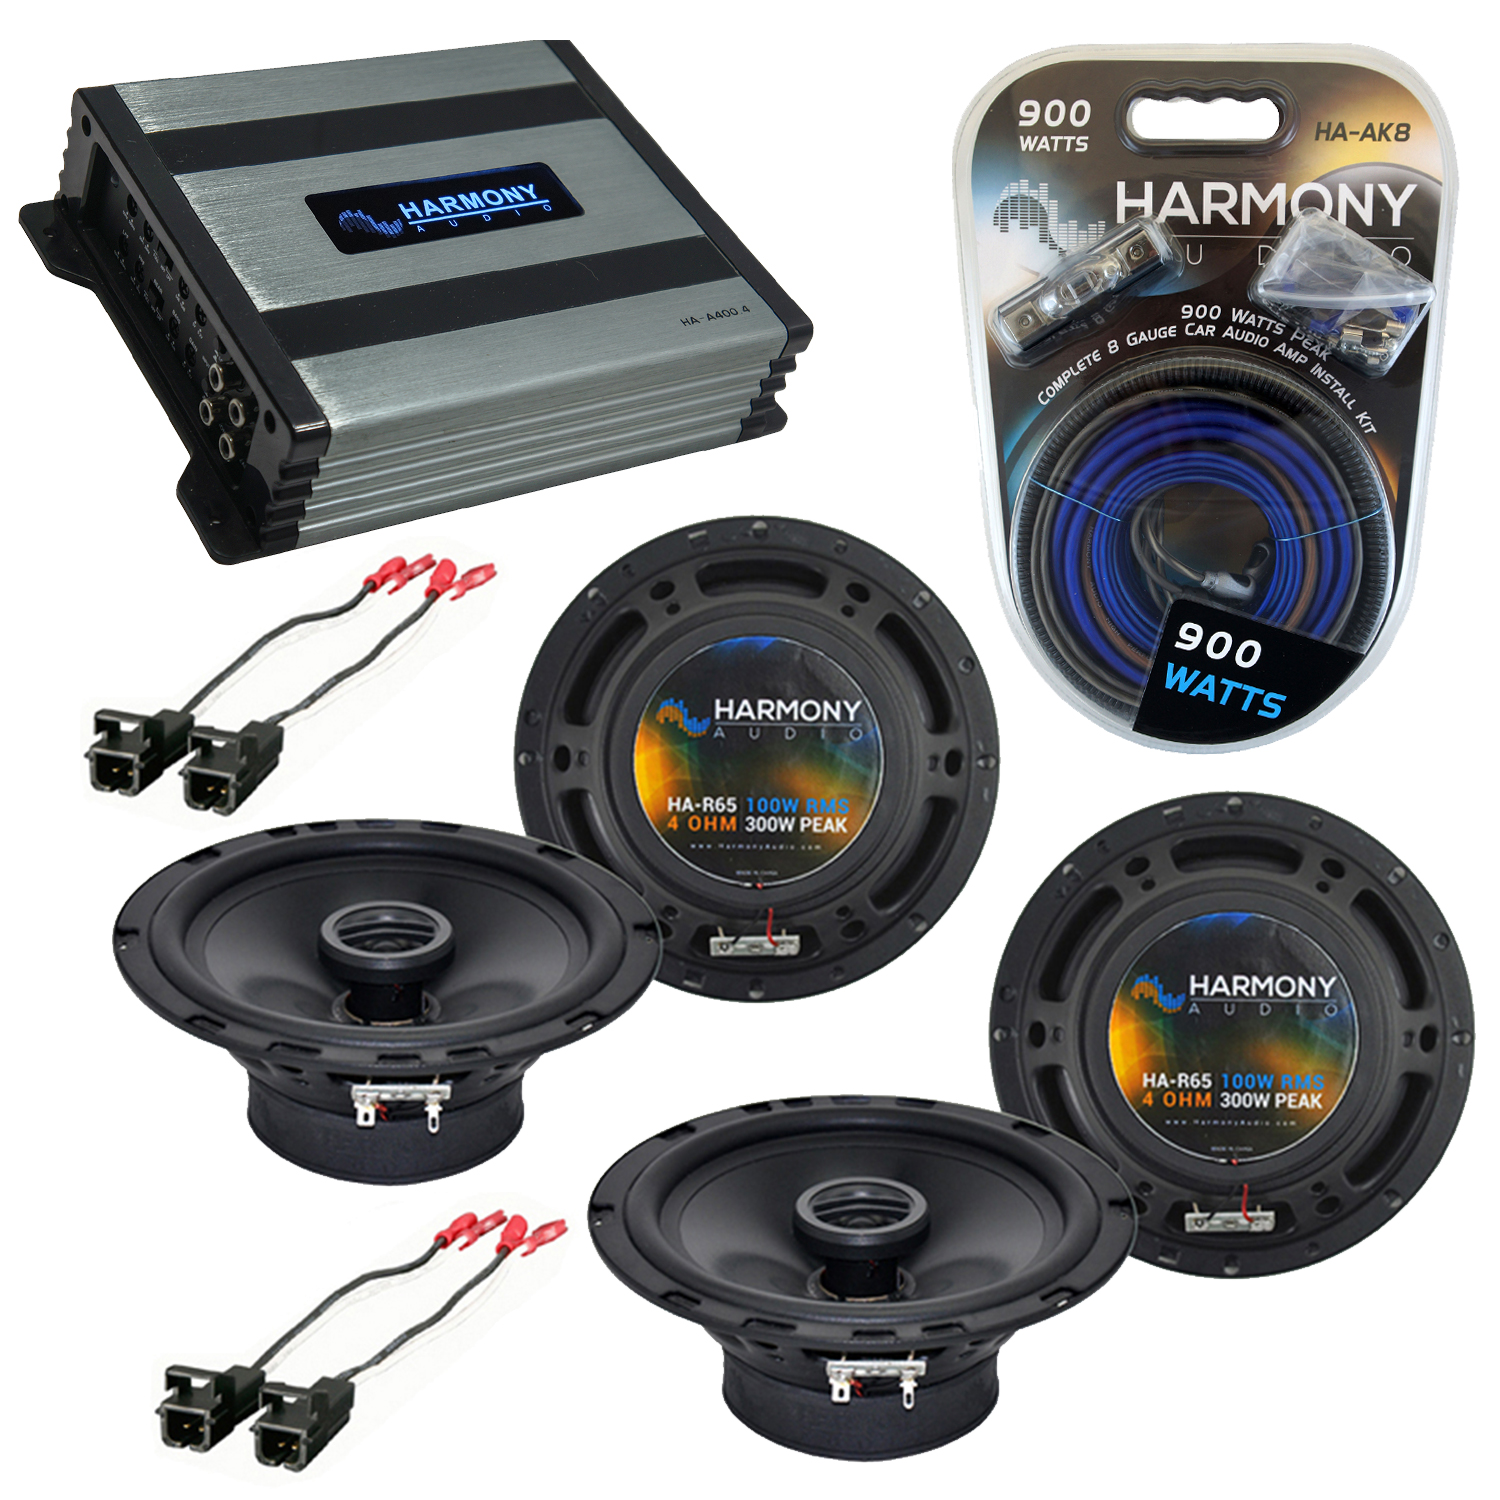 Compatible with Chevy Camaro 1993-2002 Factory Speaker Replacement Harmony (2) R65 & Harmony HA-A400.4 Amp